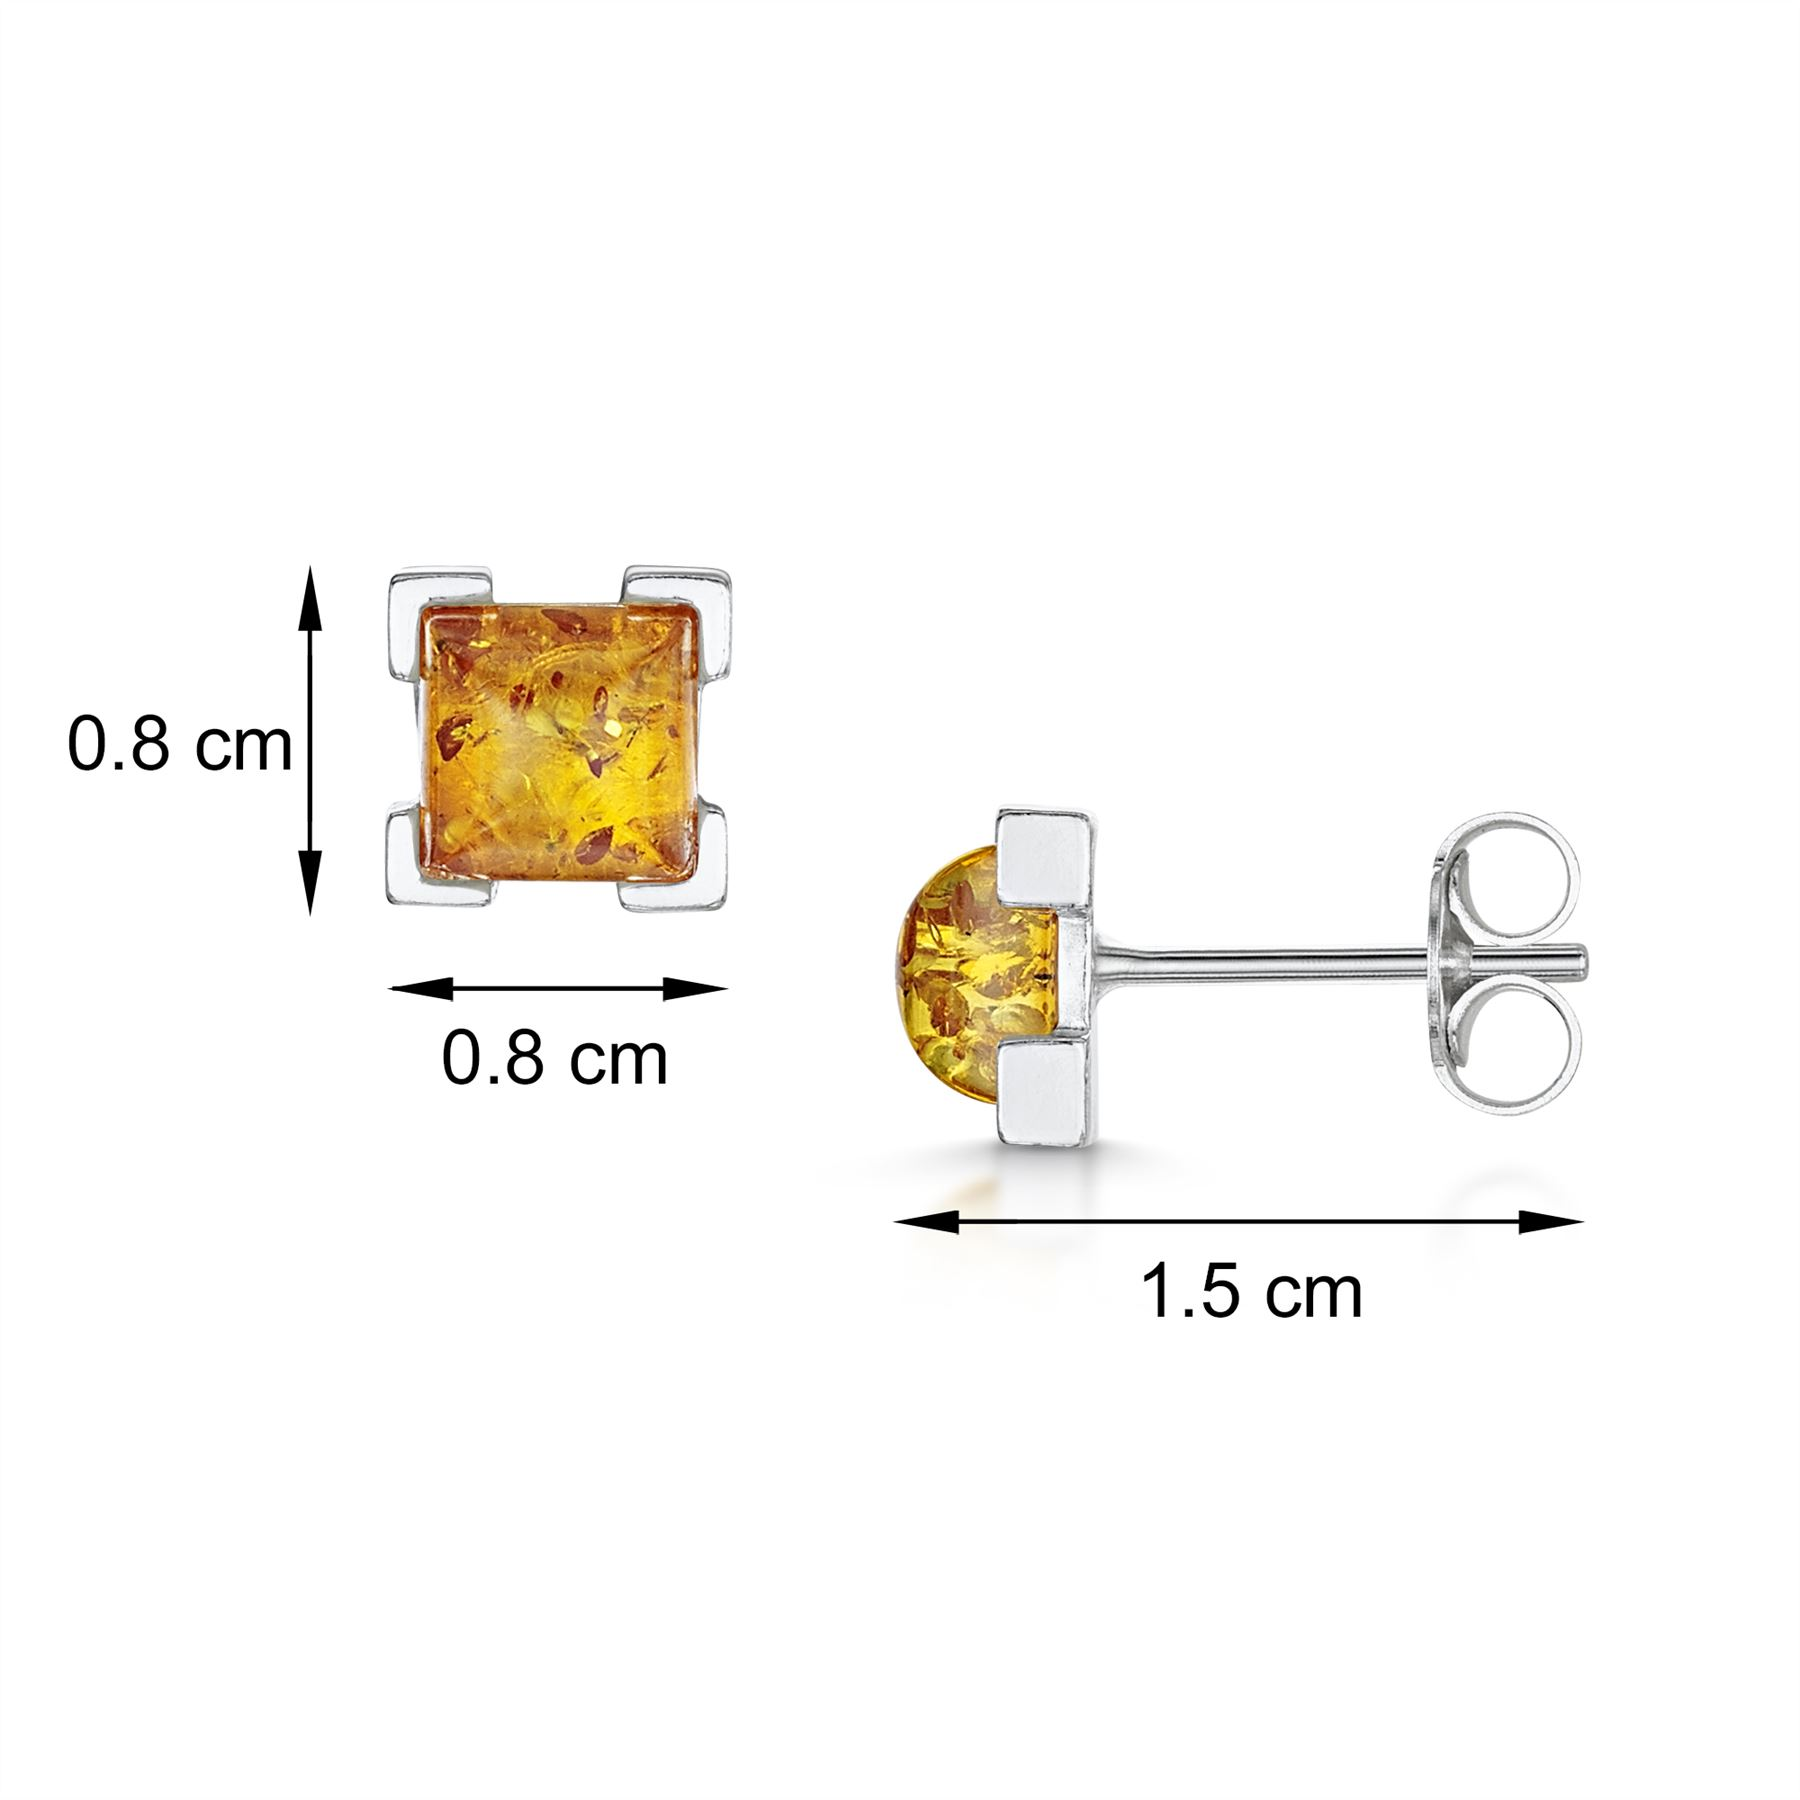 Amberta-Genuine-925-Sterling-Silver-Earrings-with-Natural-Baltic-Amber-Gemstone thumbnail 42